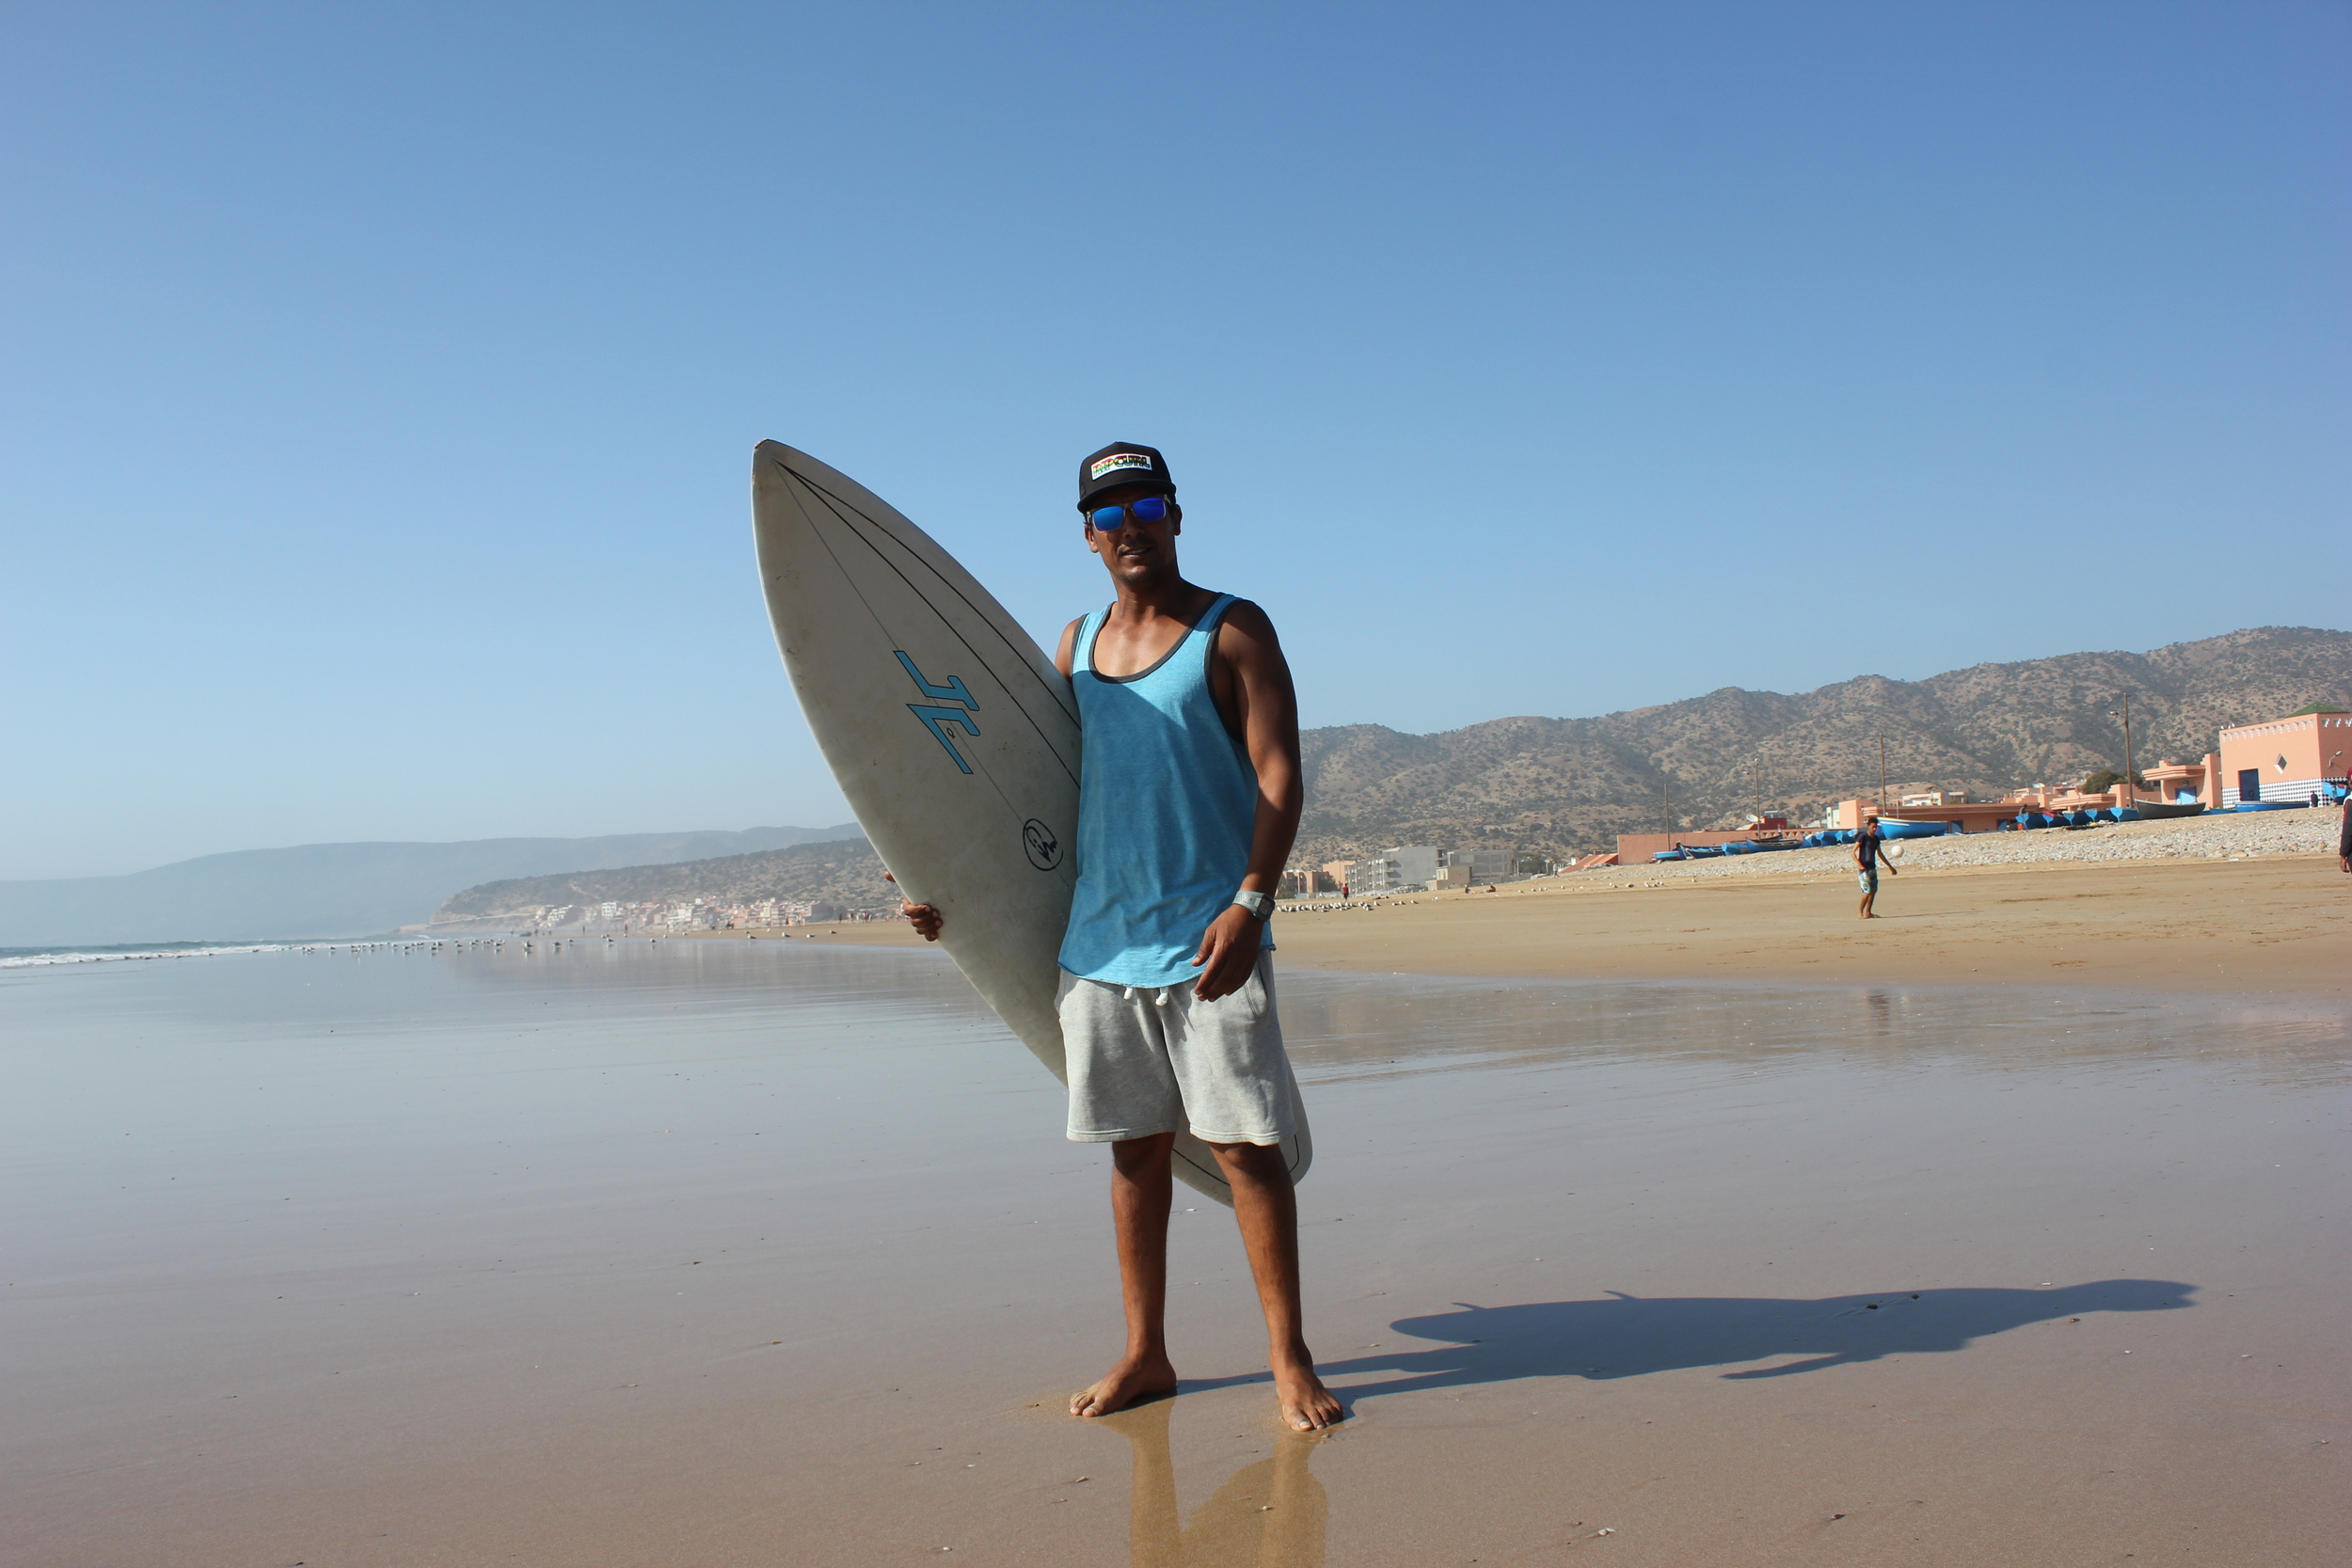 Simmo, one of the surf instructors